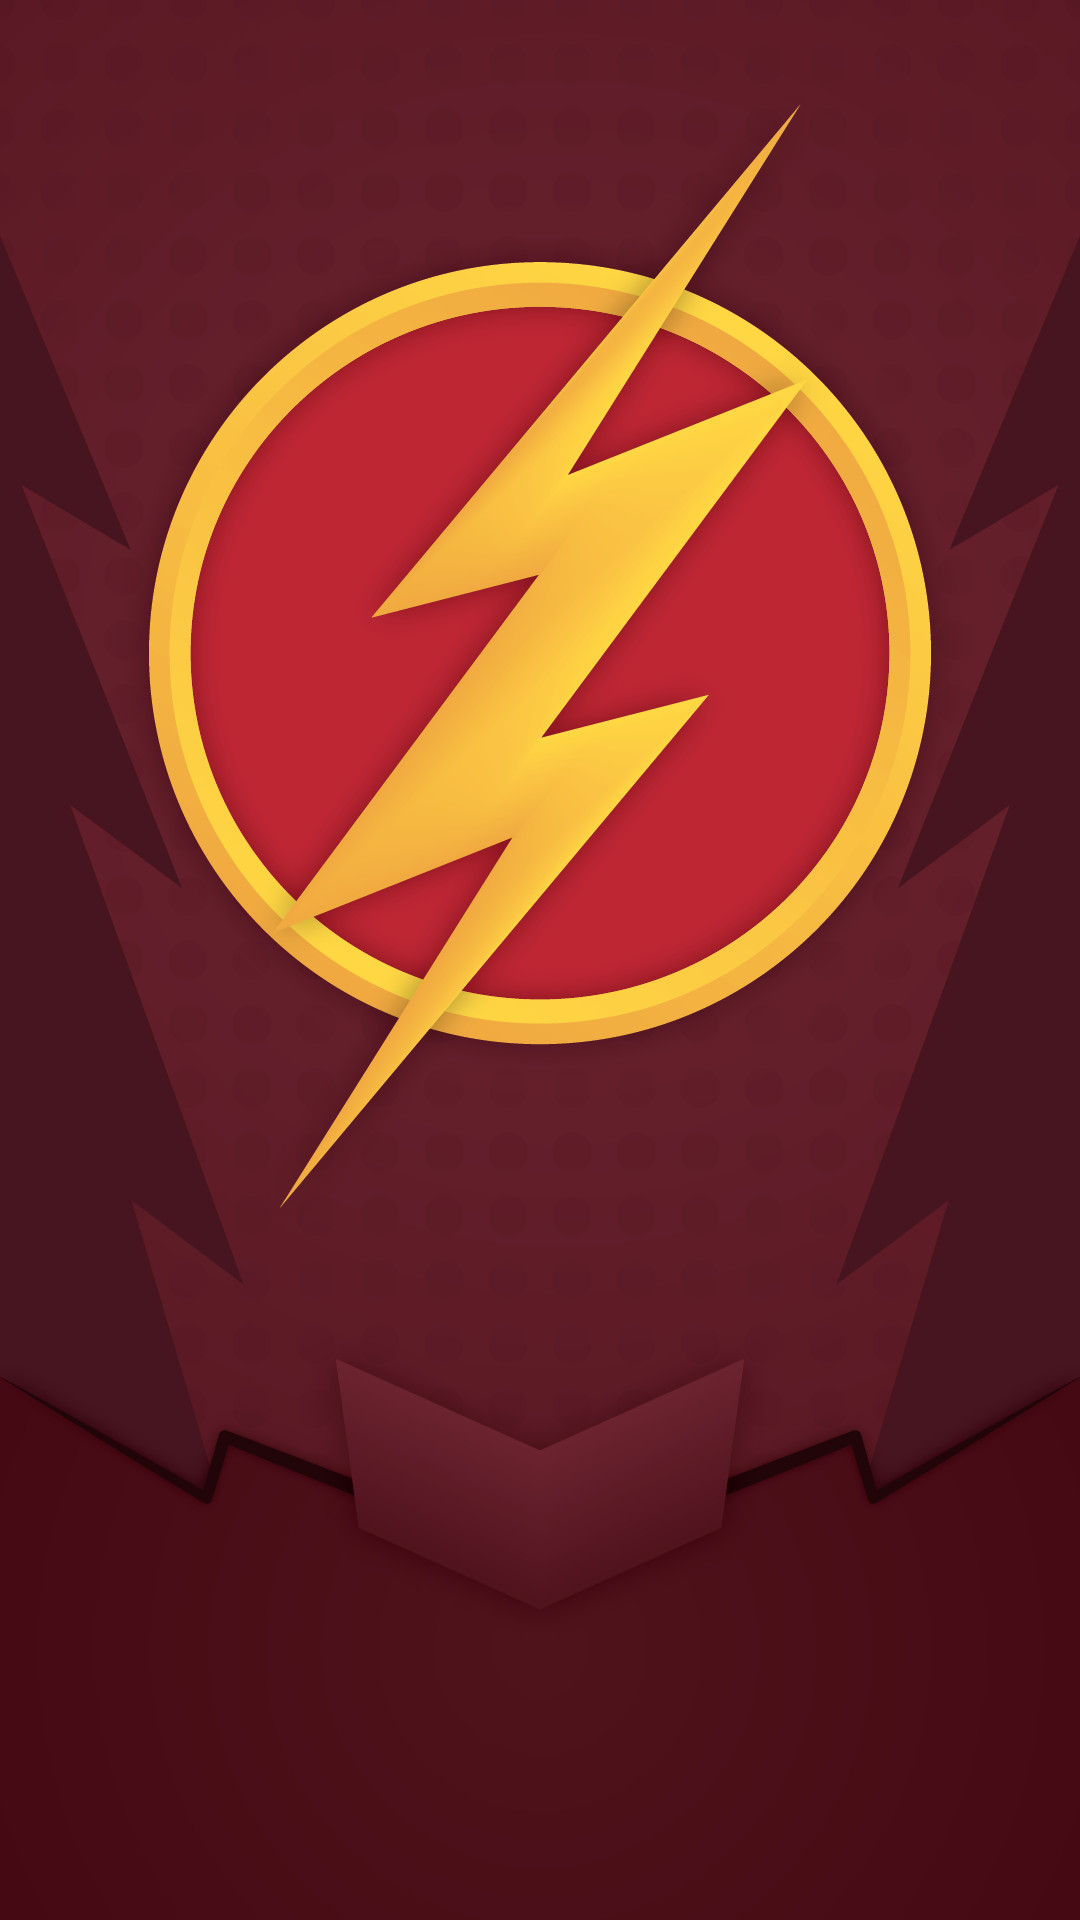 The Flash Wallpaper iPhone 7